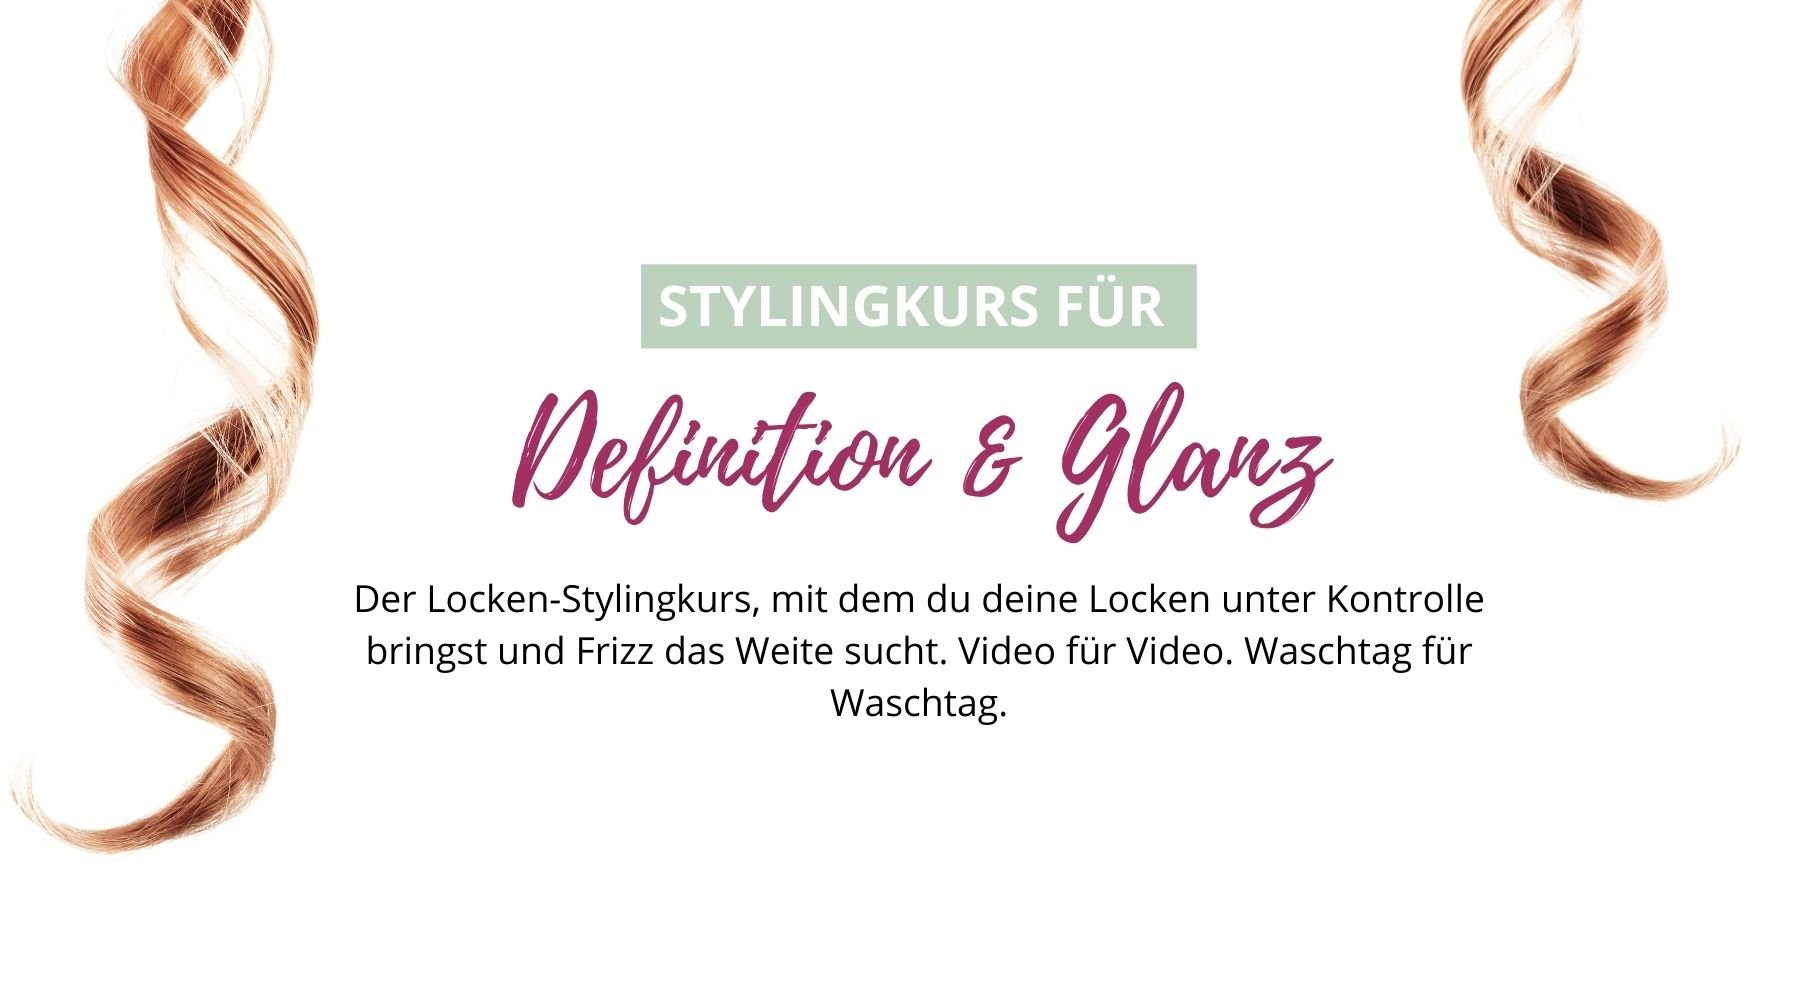 Stylingkurs für Definition & Glanz-5